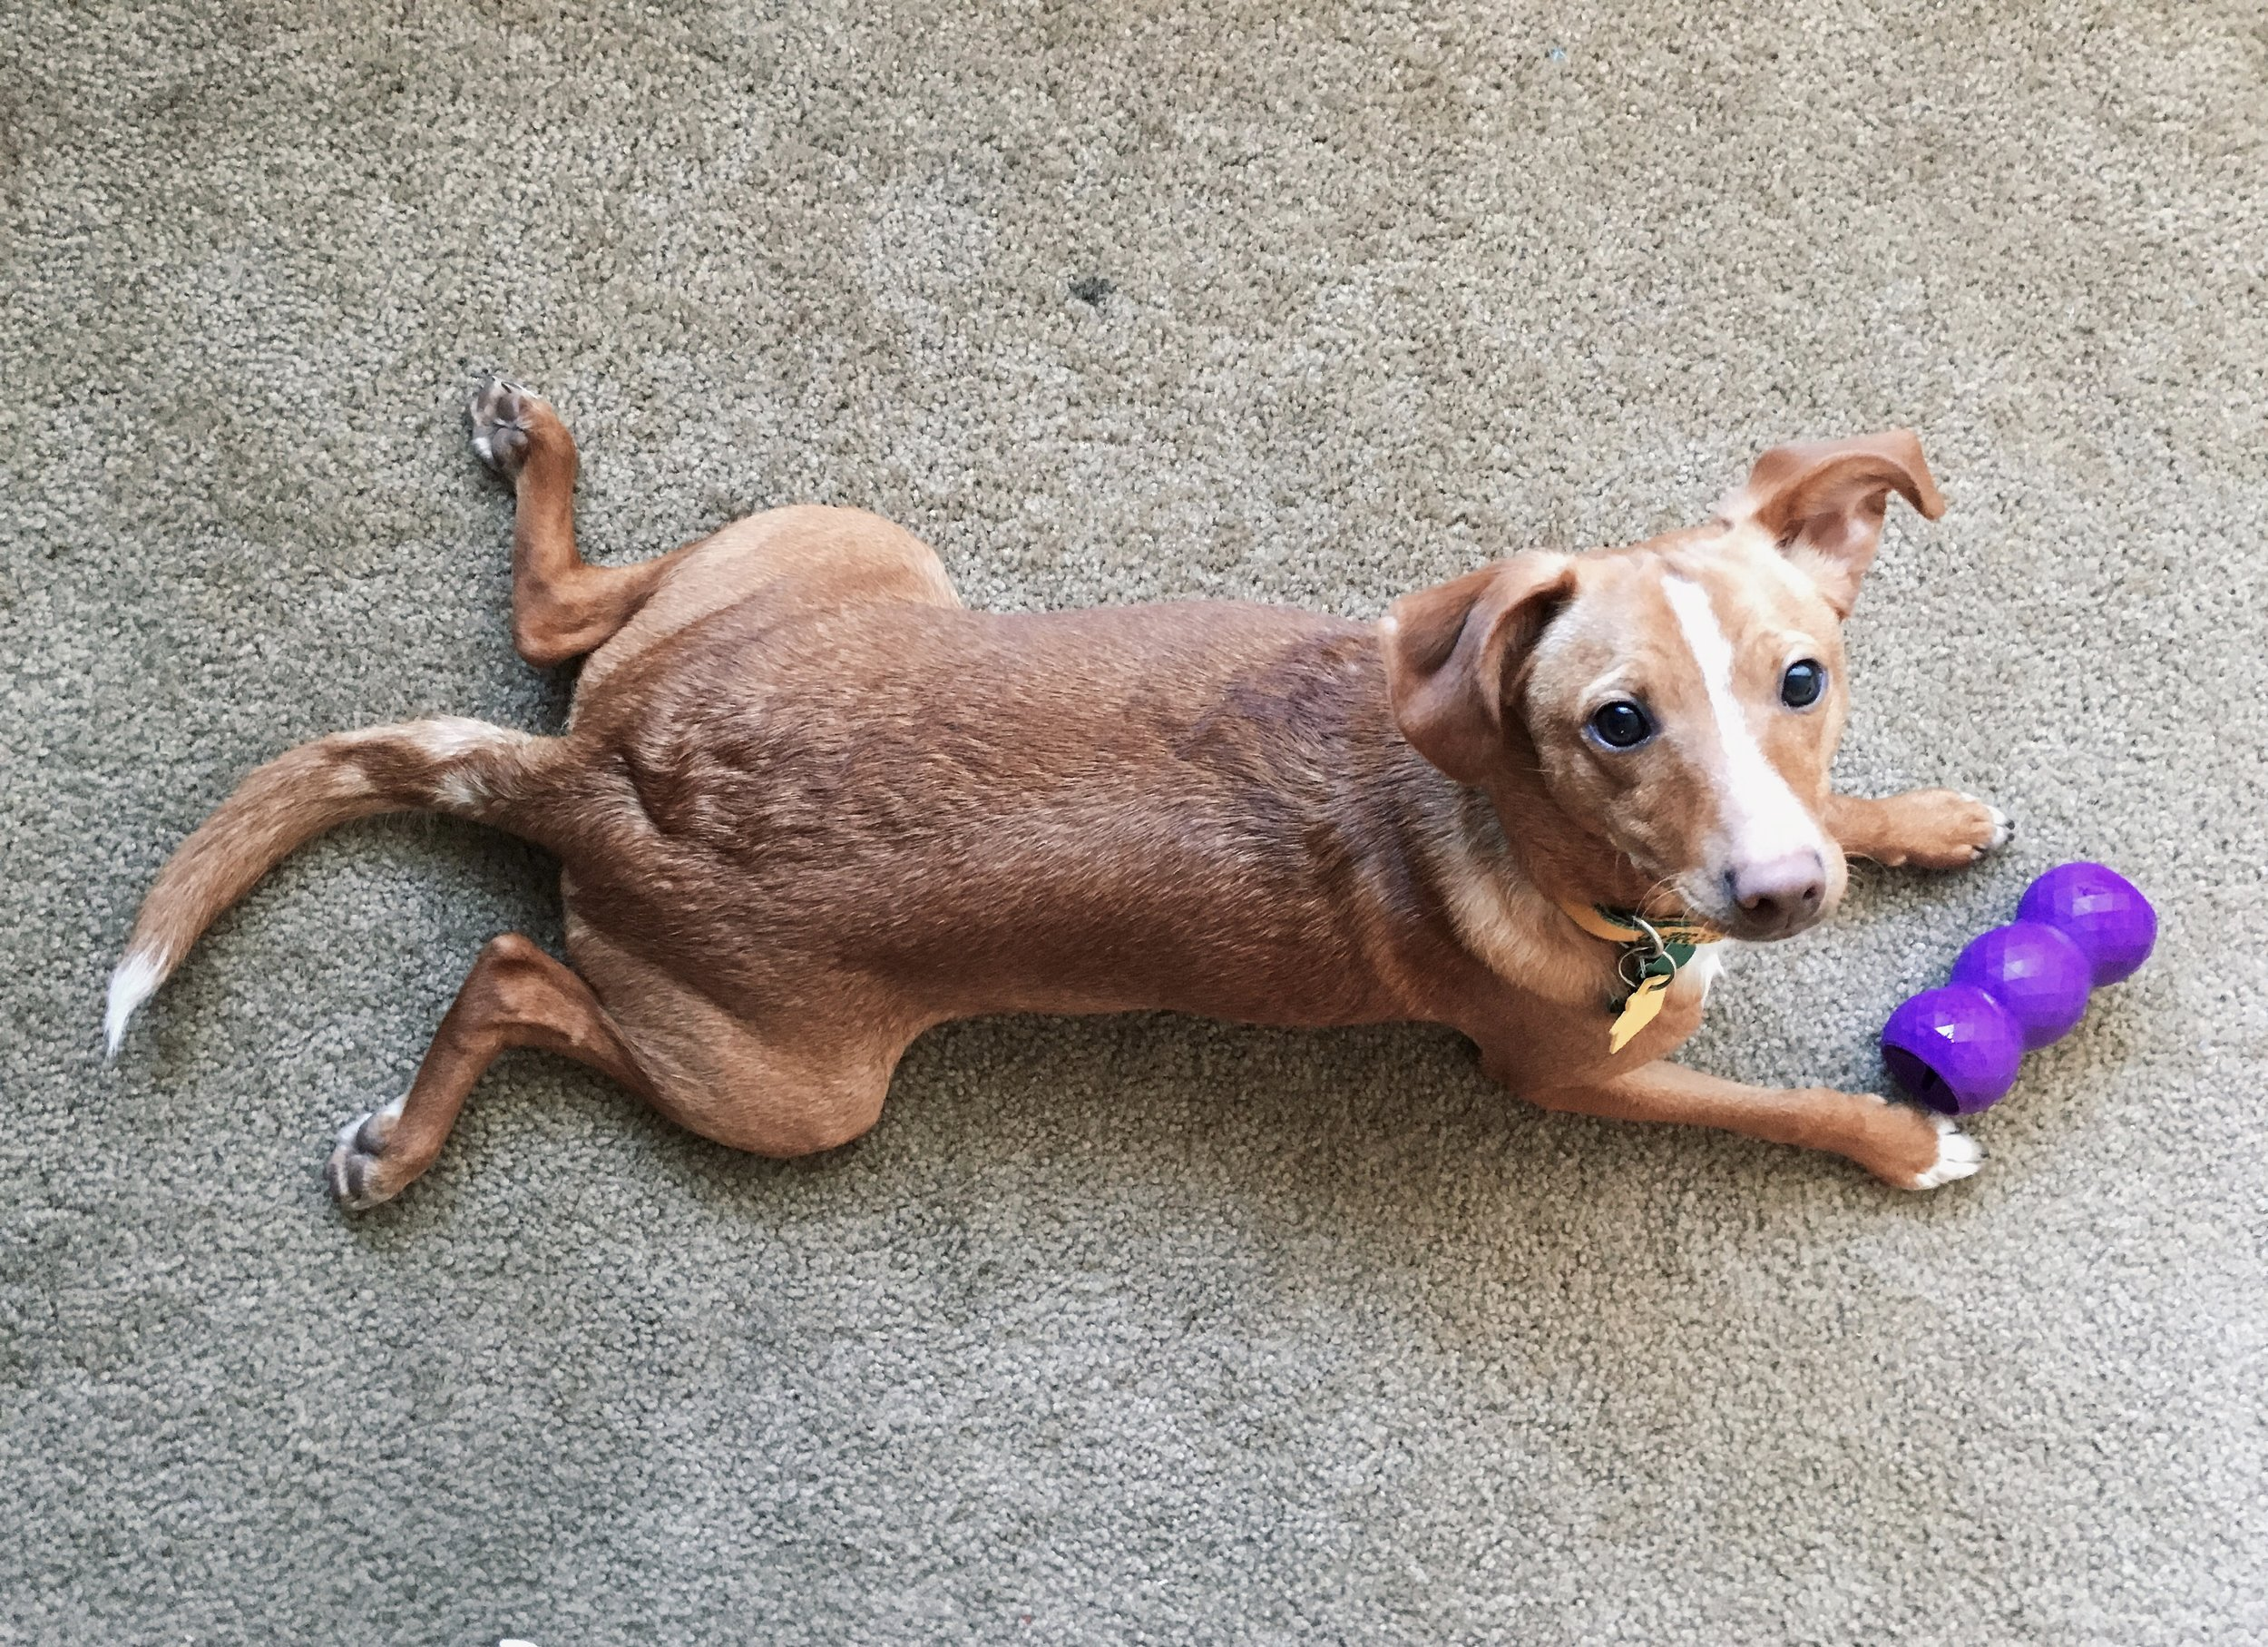 A Pup and his Kong Toy